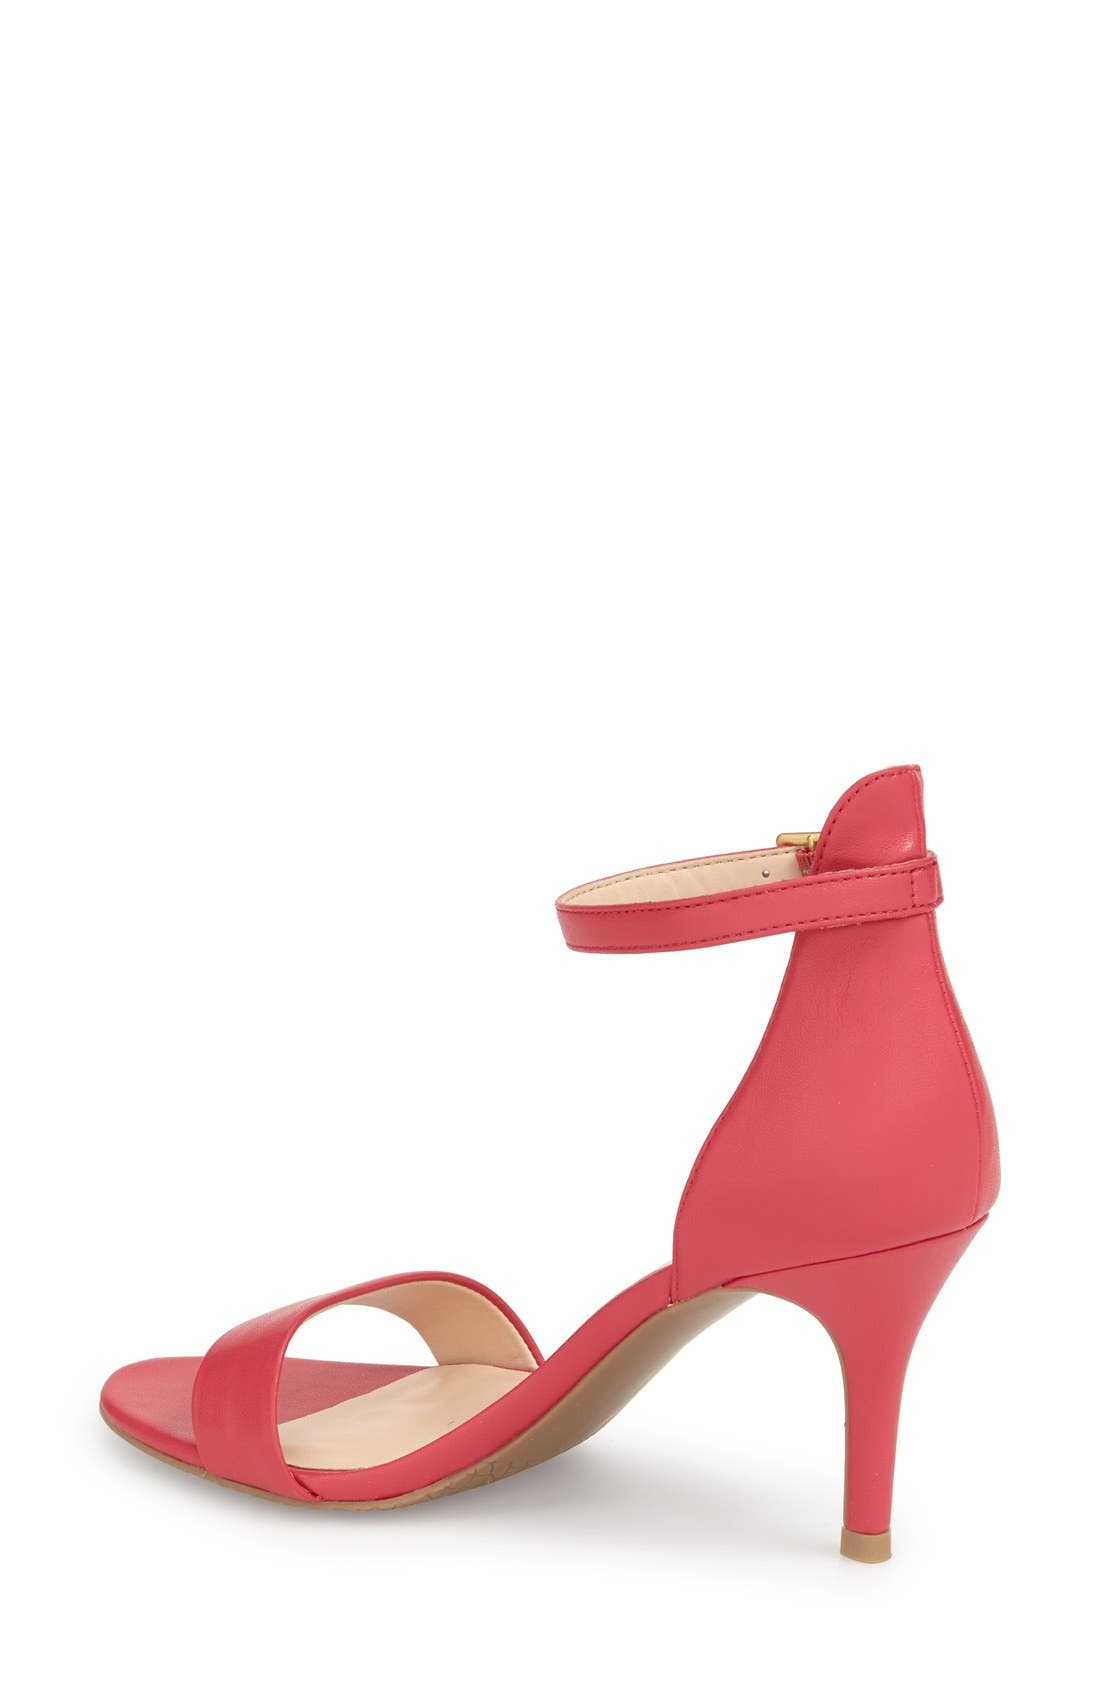 'Luminate' Open Toe Dress Sandal,                             Alternate thumbnail 133, color,